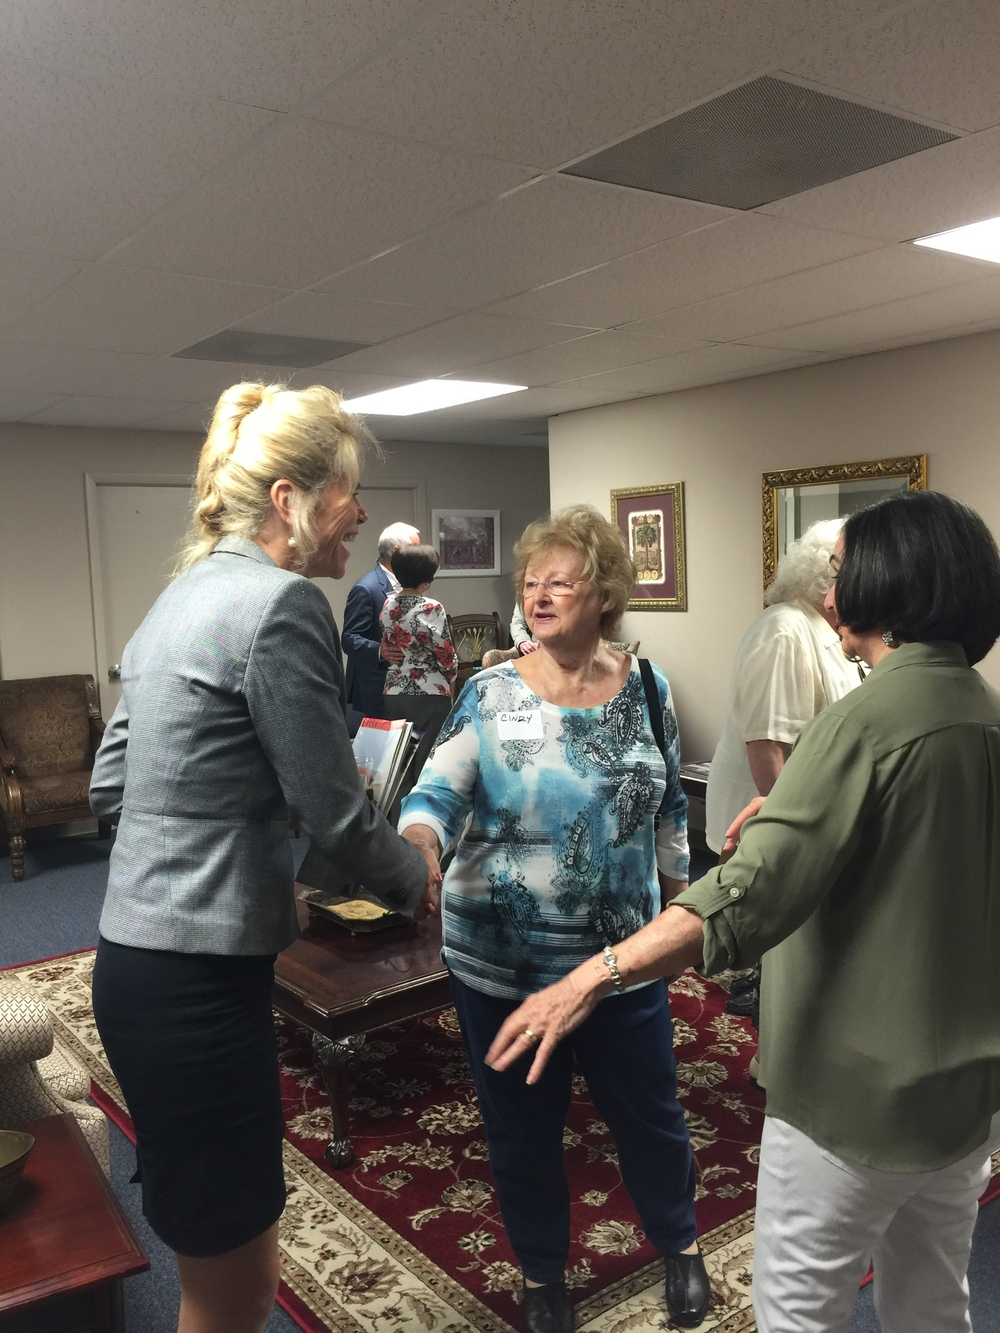 Speaking with the Hillsborough Women's Republican Club, Federated.